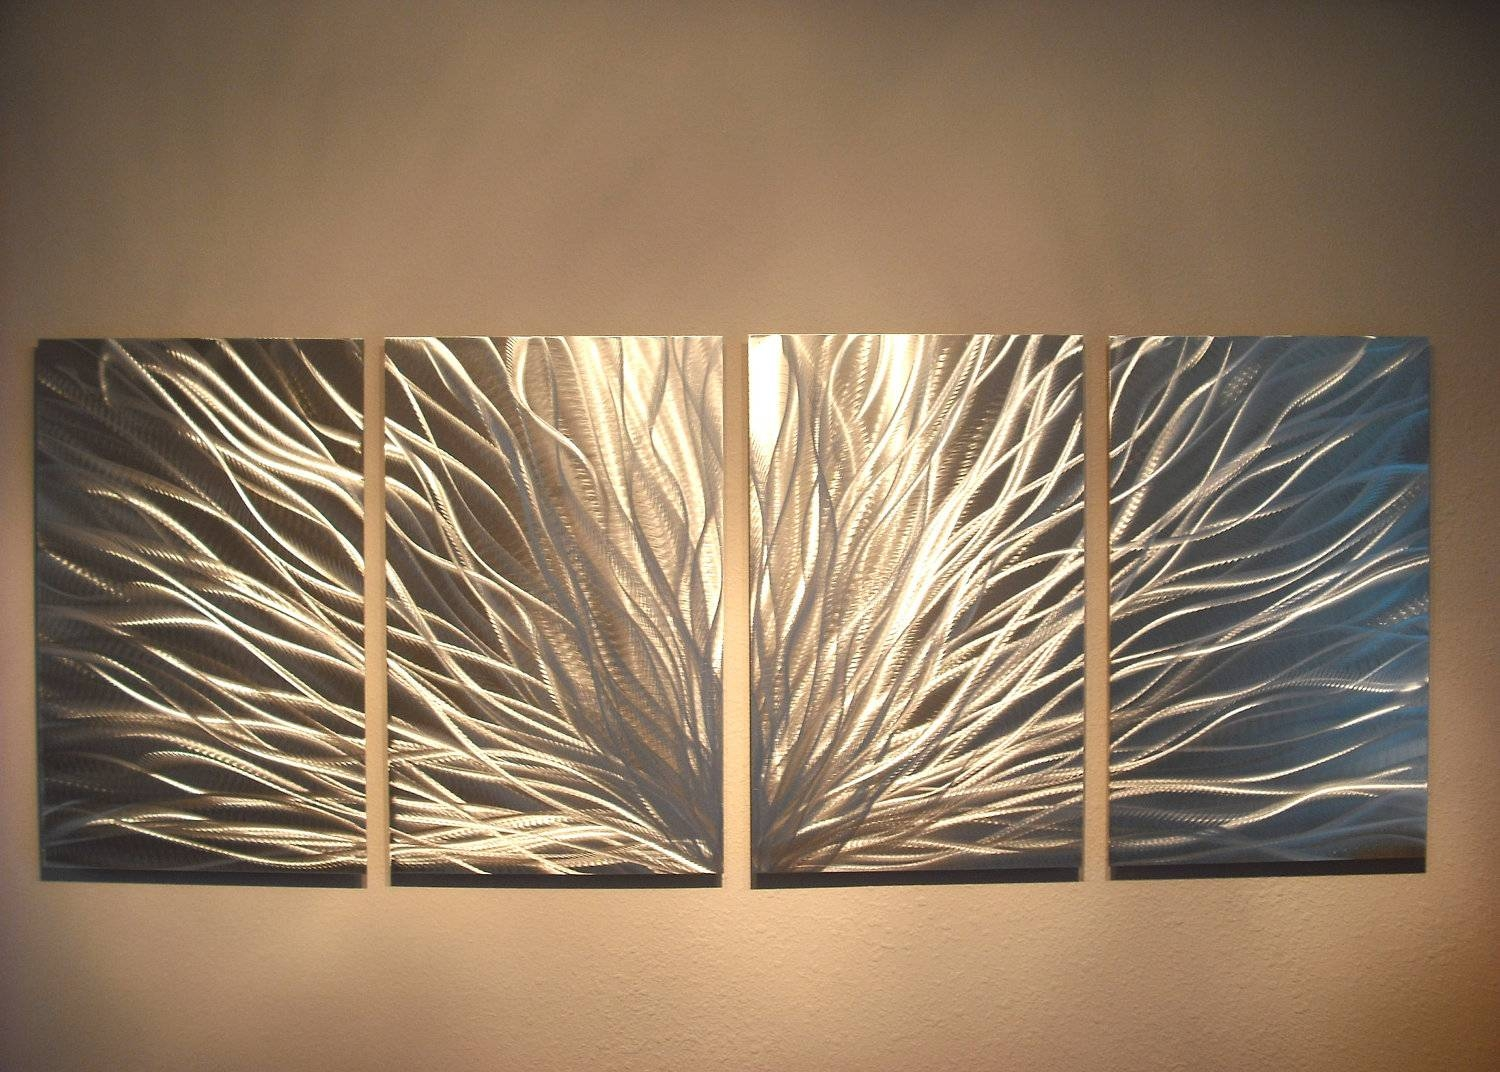 Radiance – Abstract Metal Wall Art Contemporary Modern Decor With Current Contemporary Metal Wall Art Sculptures (View 13 of 20)